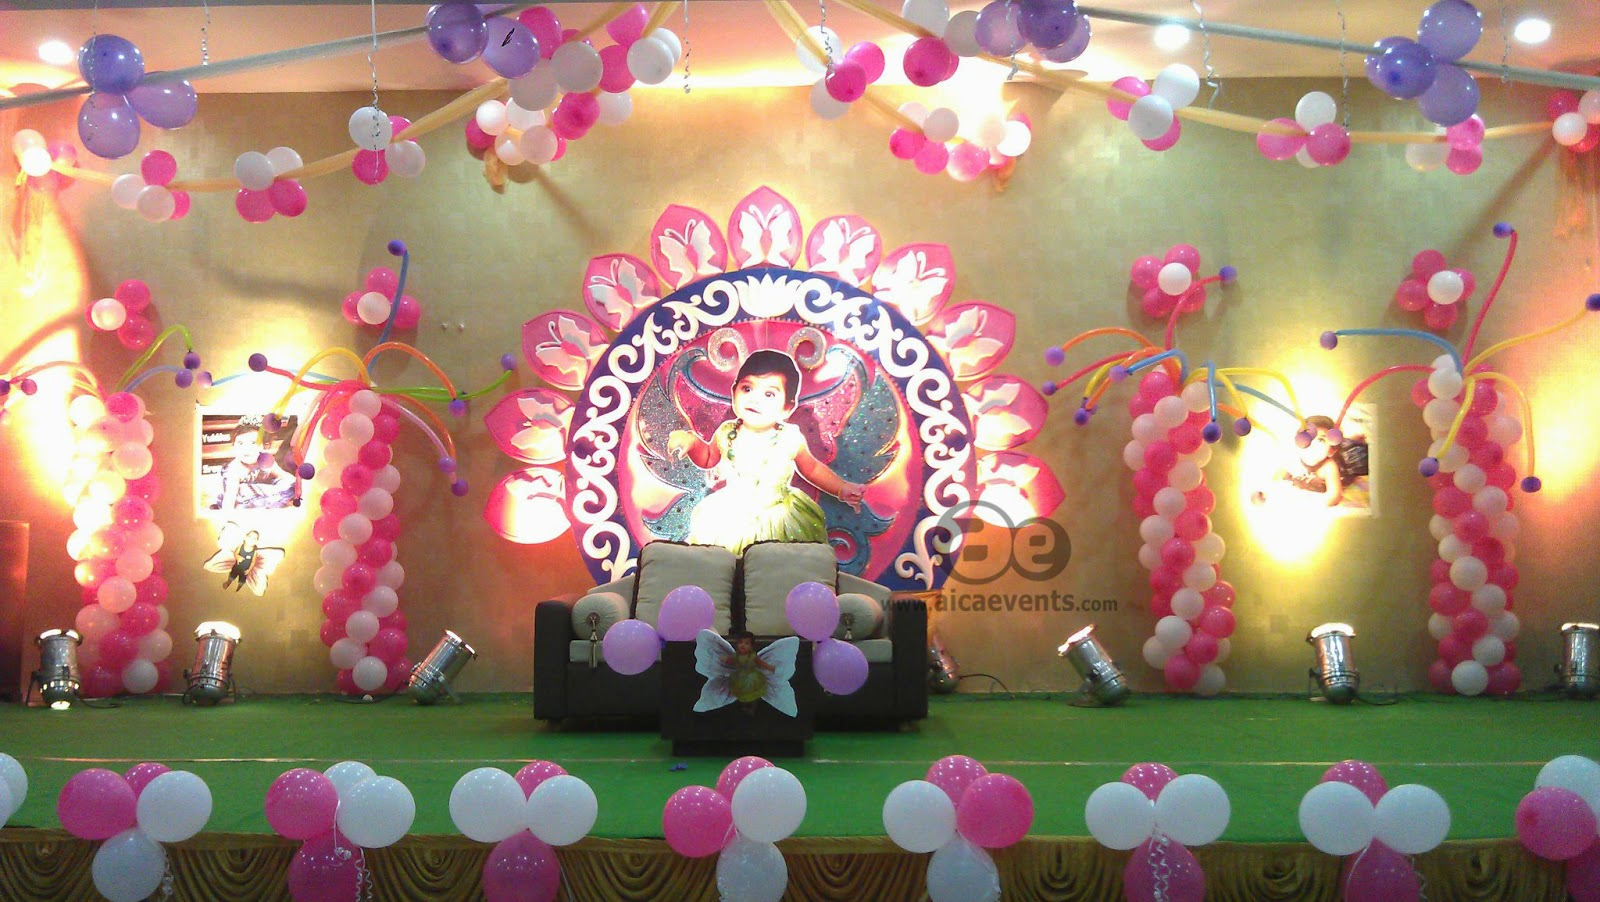 aicaevents india butterfly theme birthday party decorations